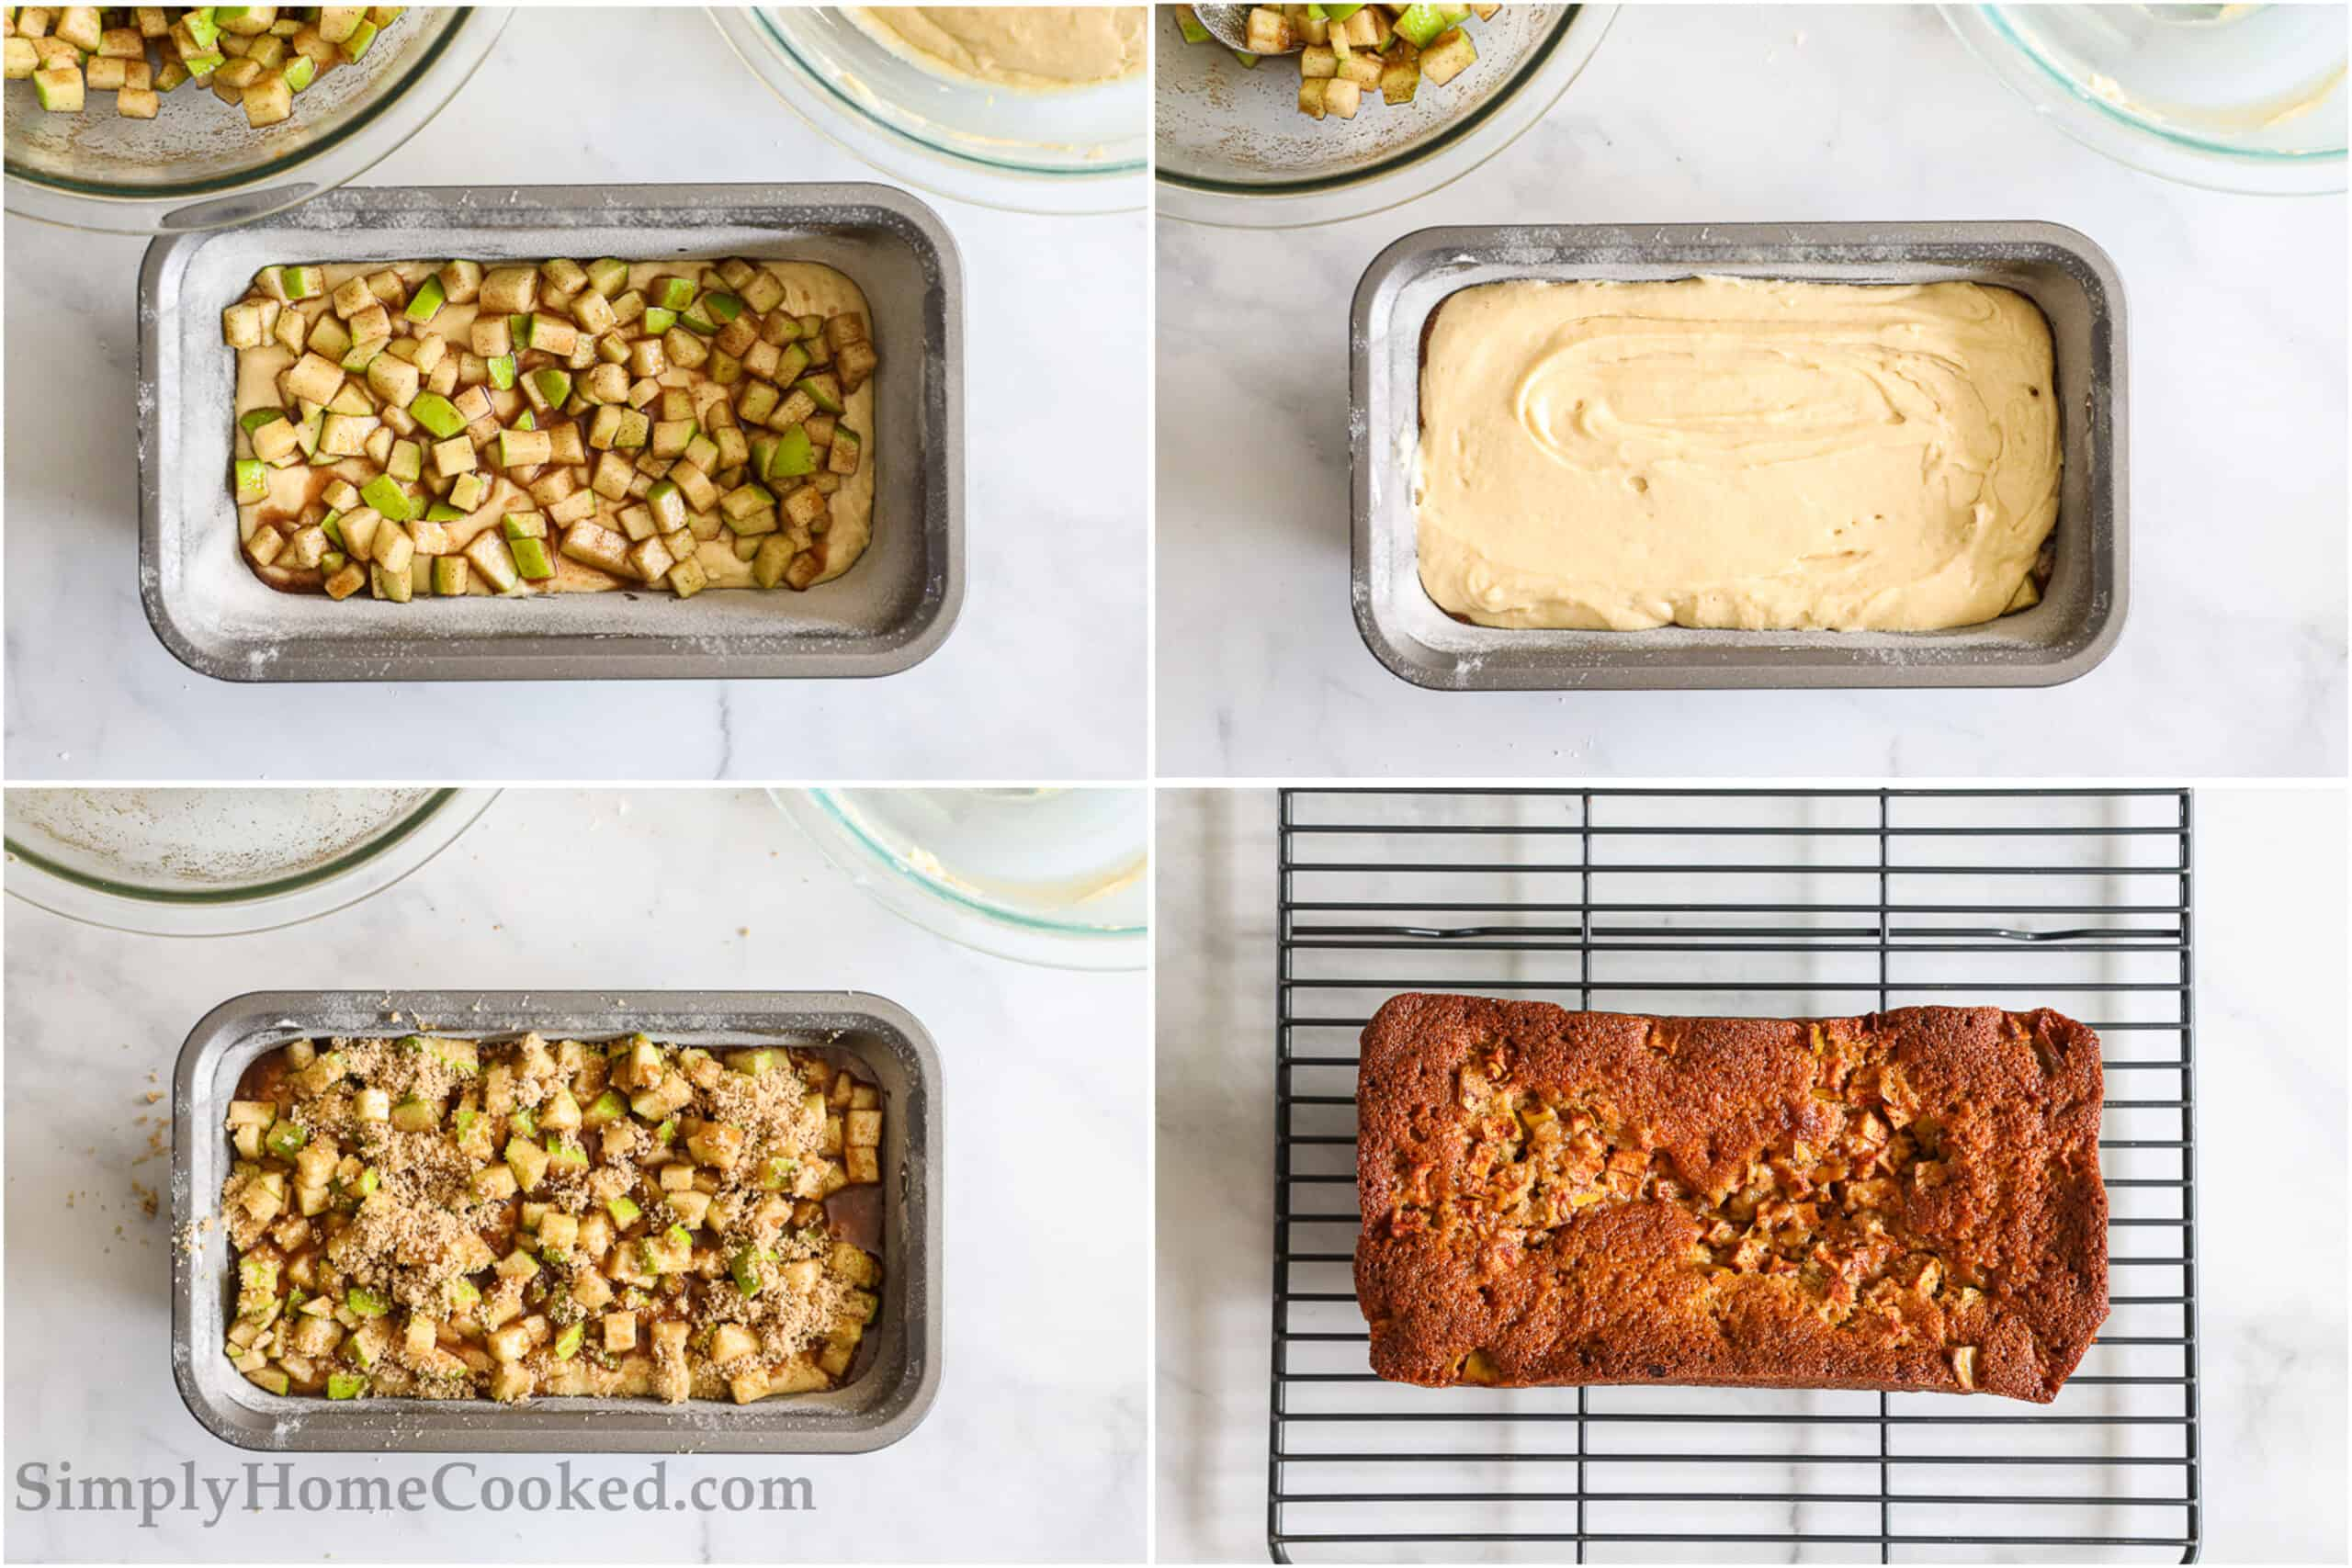 Steps to make Apple Fritter Bread, including layering the batter and apple mixture before topping with brown sugar and baking.